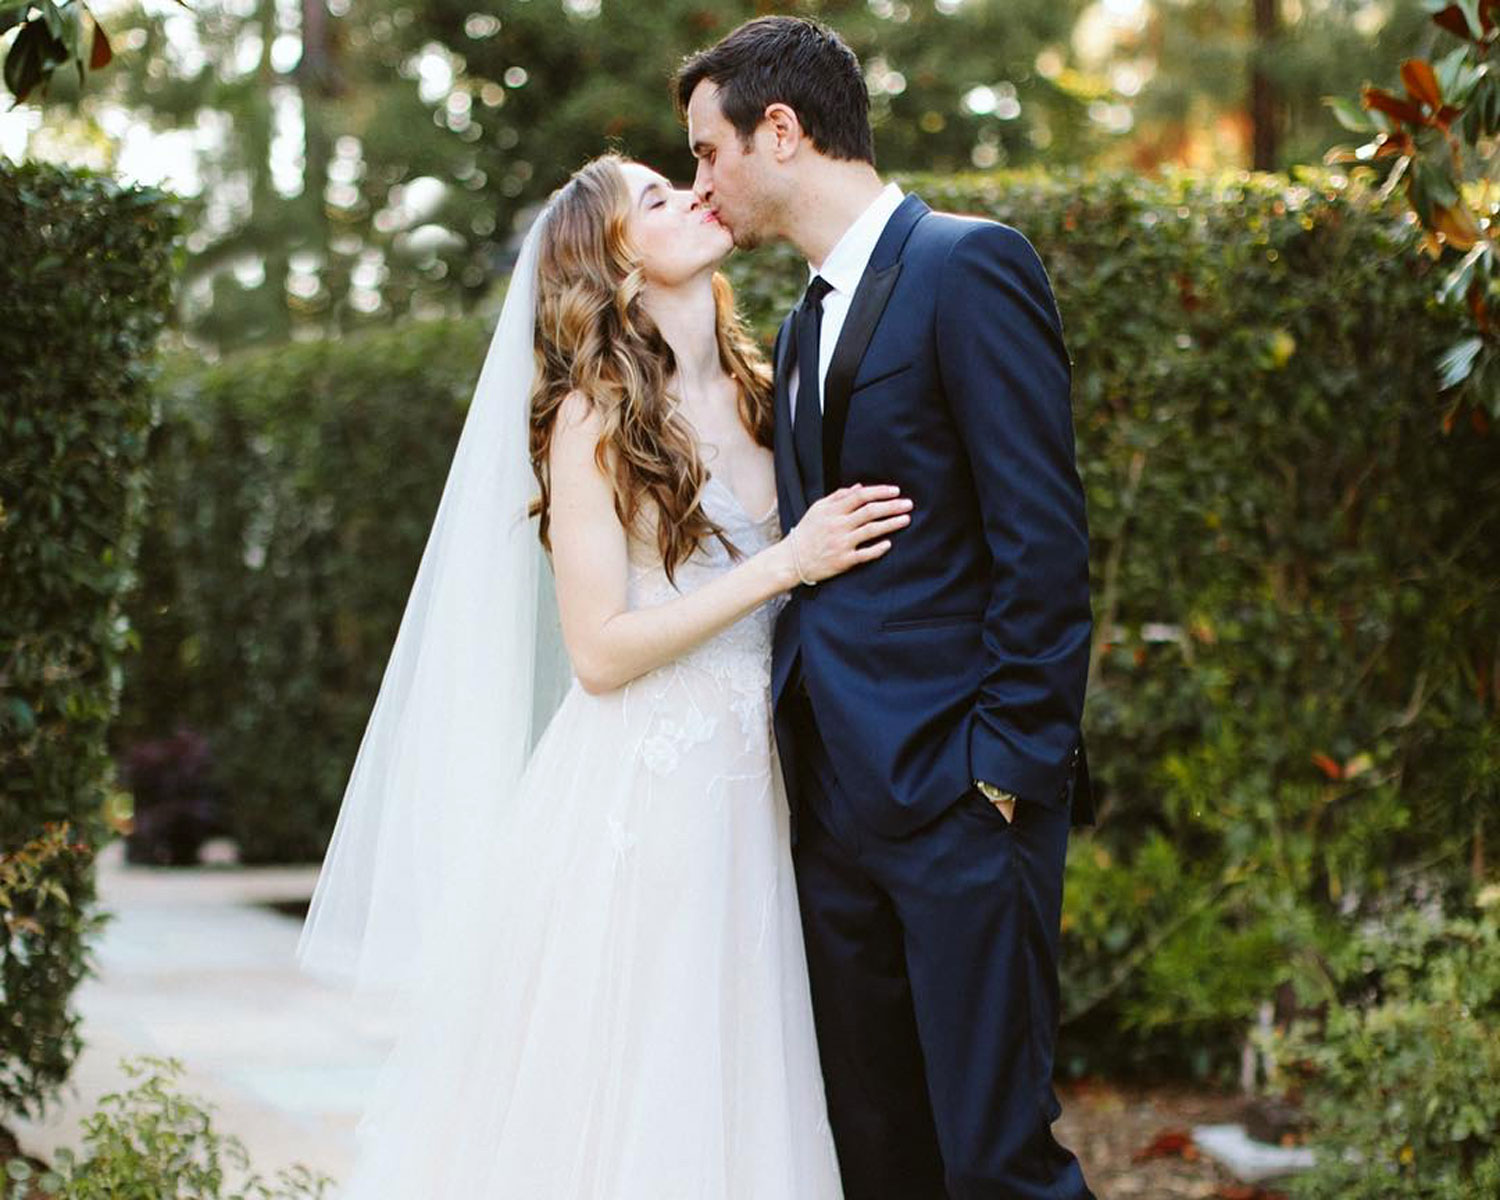 Danielle Panabaker Marries Hayes Robbins See The First Photo